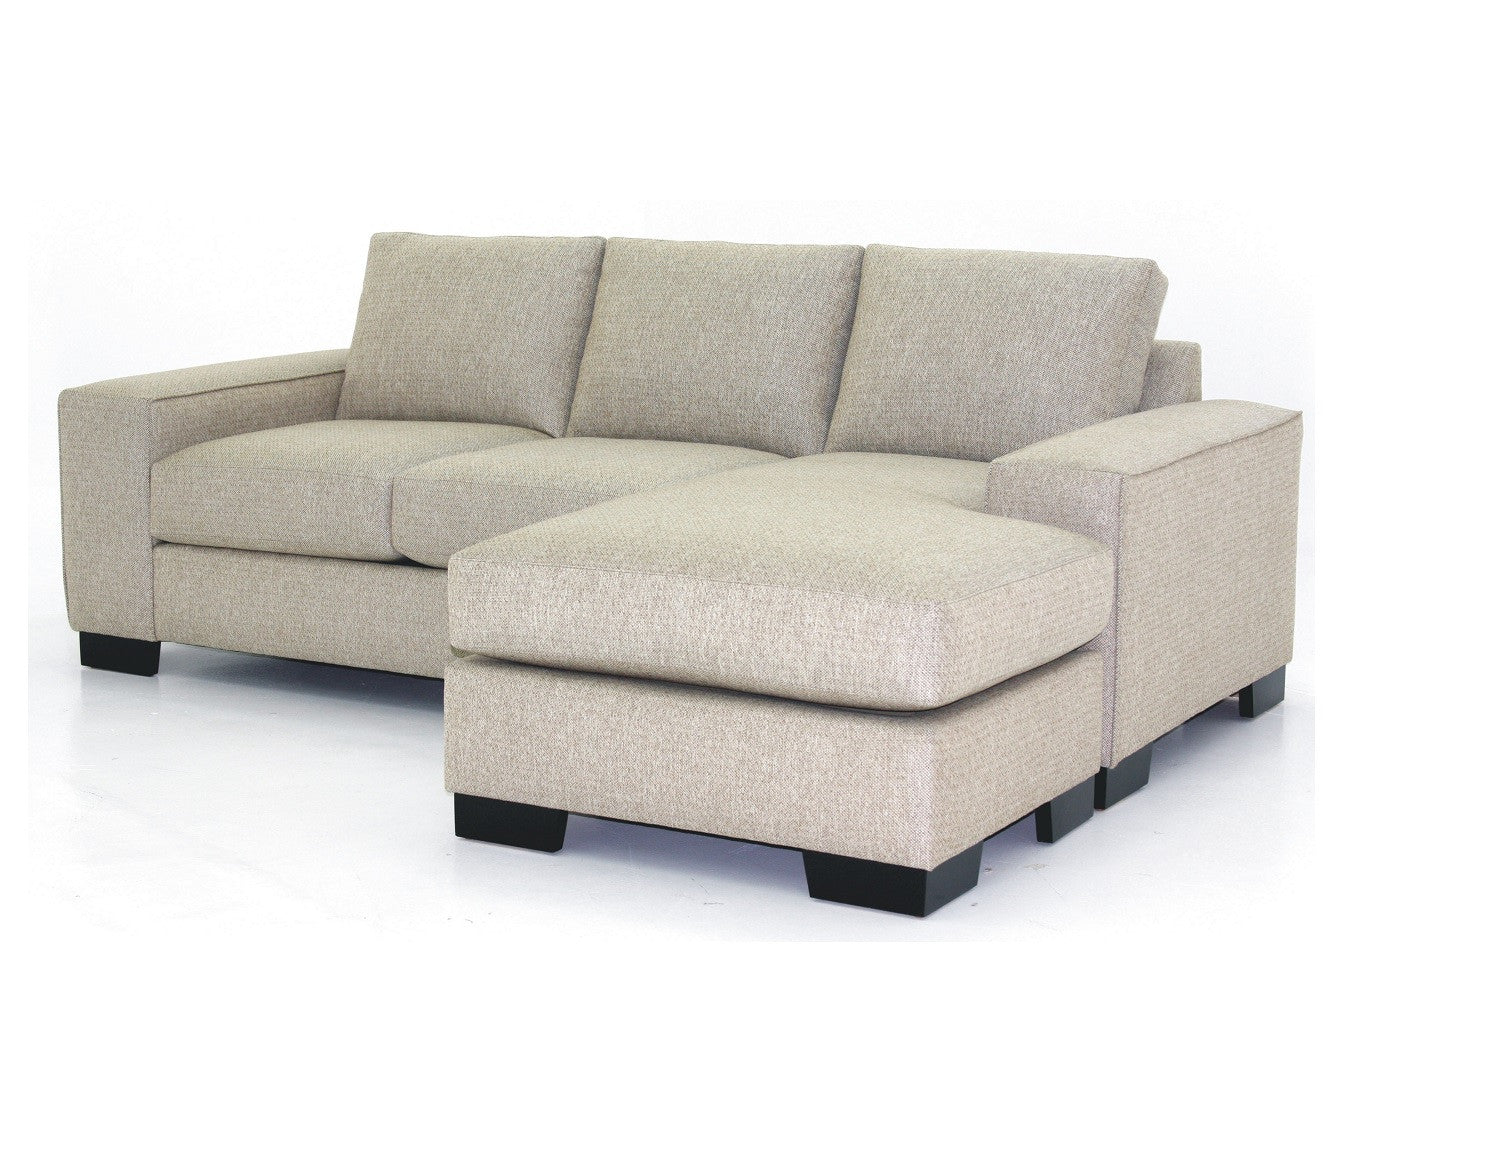 with sofa ca largo chaise almond fabric sc productdetail living key sectional piece front en solo sofas sl seating sectionals